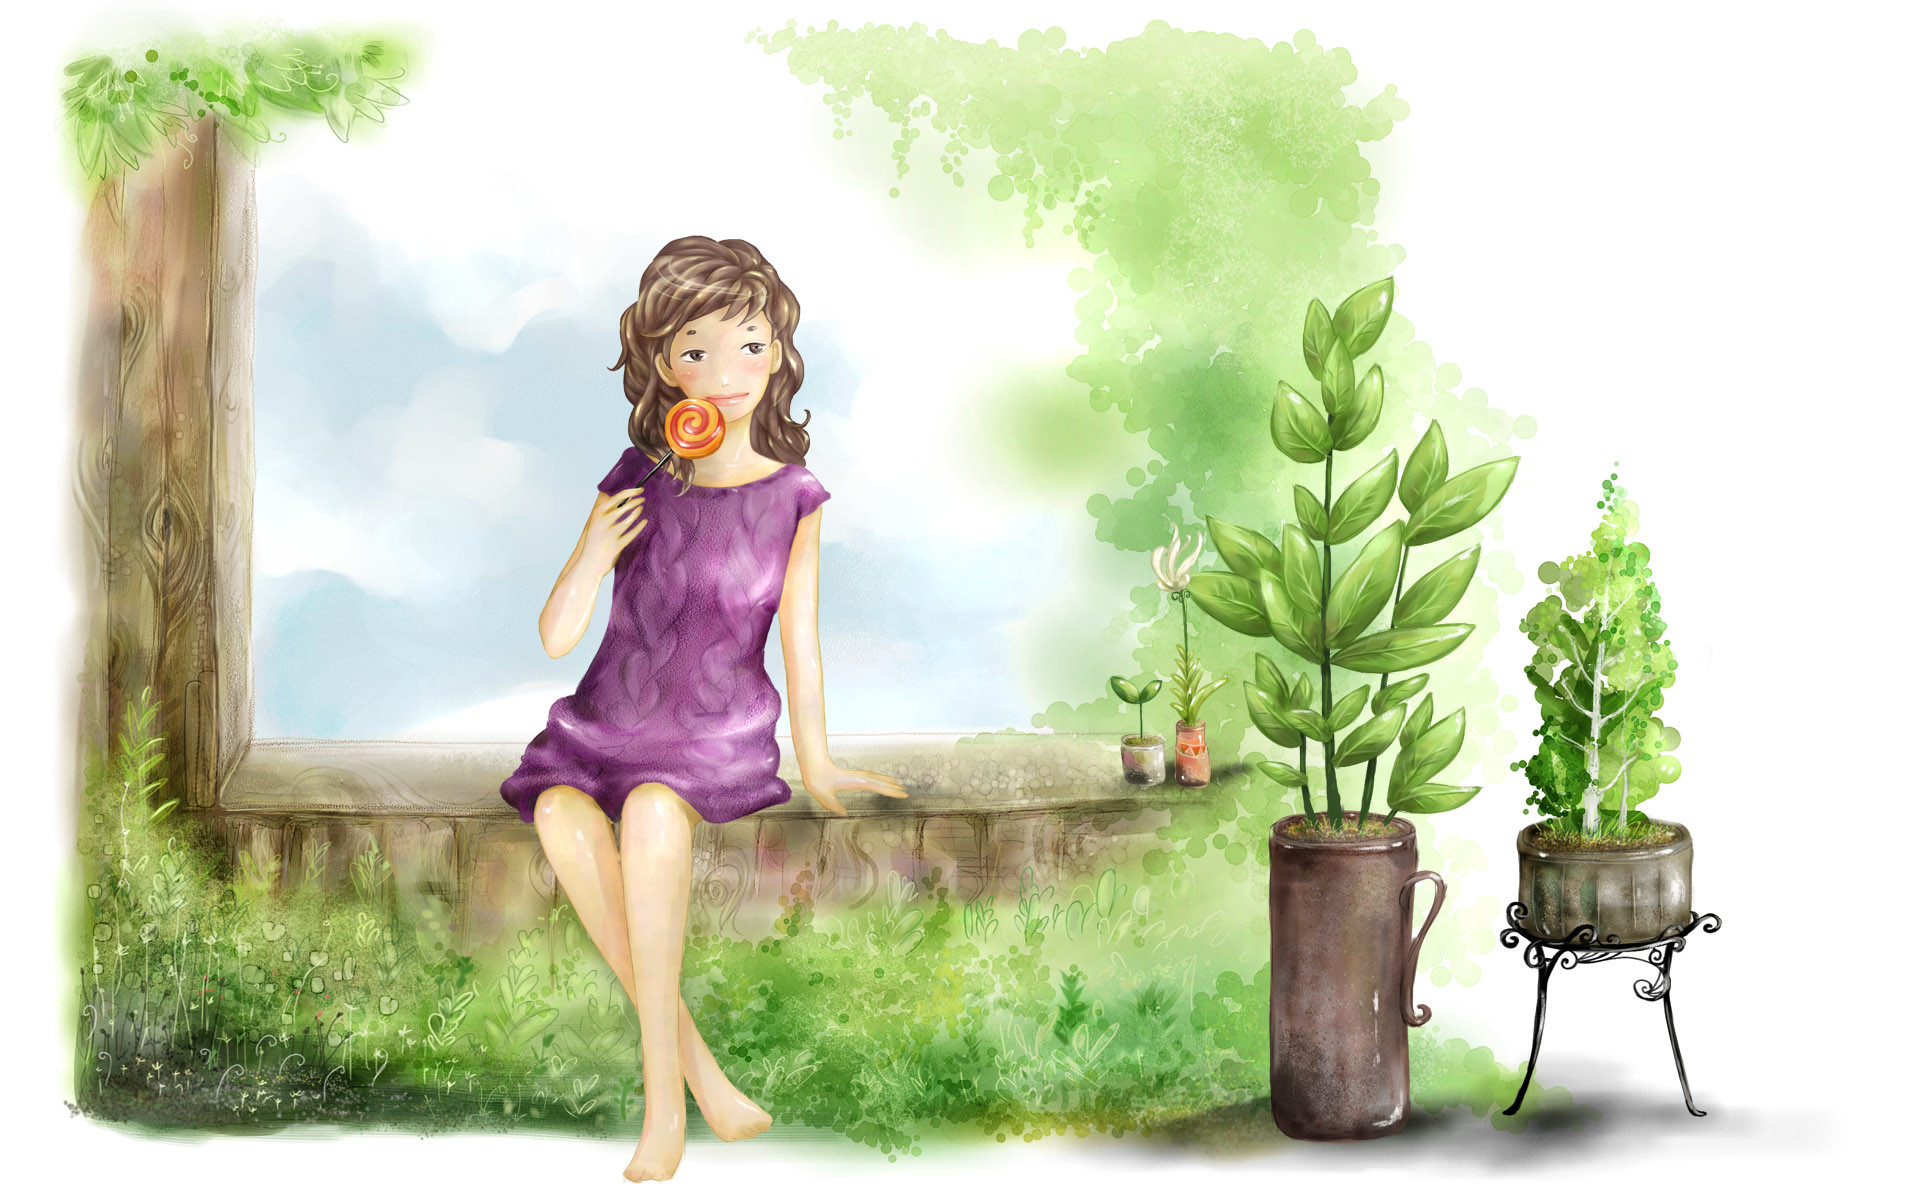 Cute Cartoon Wallpapers for Girls 1920×1200 Wallpapers Of Animated Girls  (54 Wallpapers)